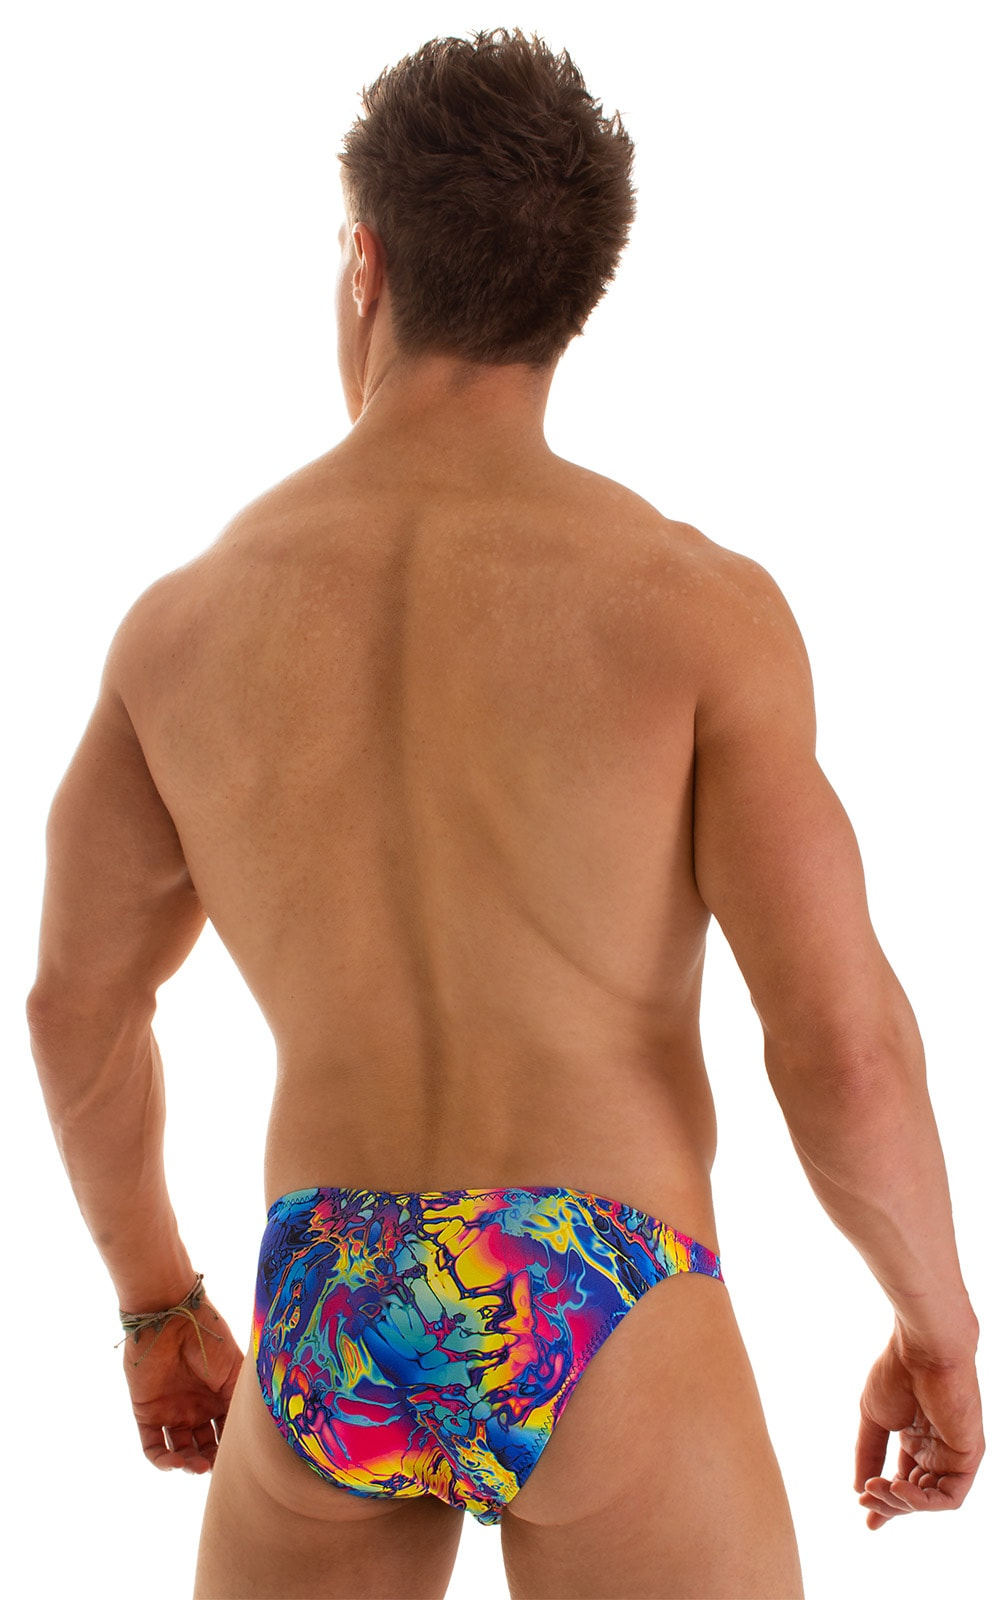 Fitted Bikini Bathing Suit in Mind Vision Rainbow 2